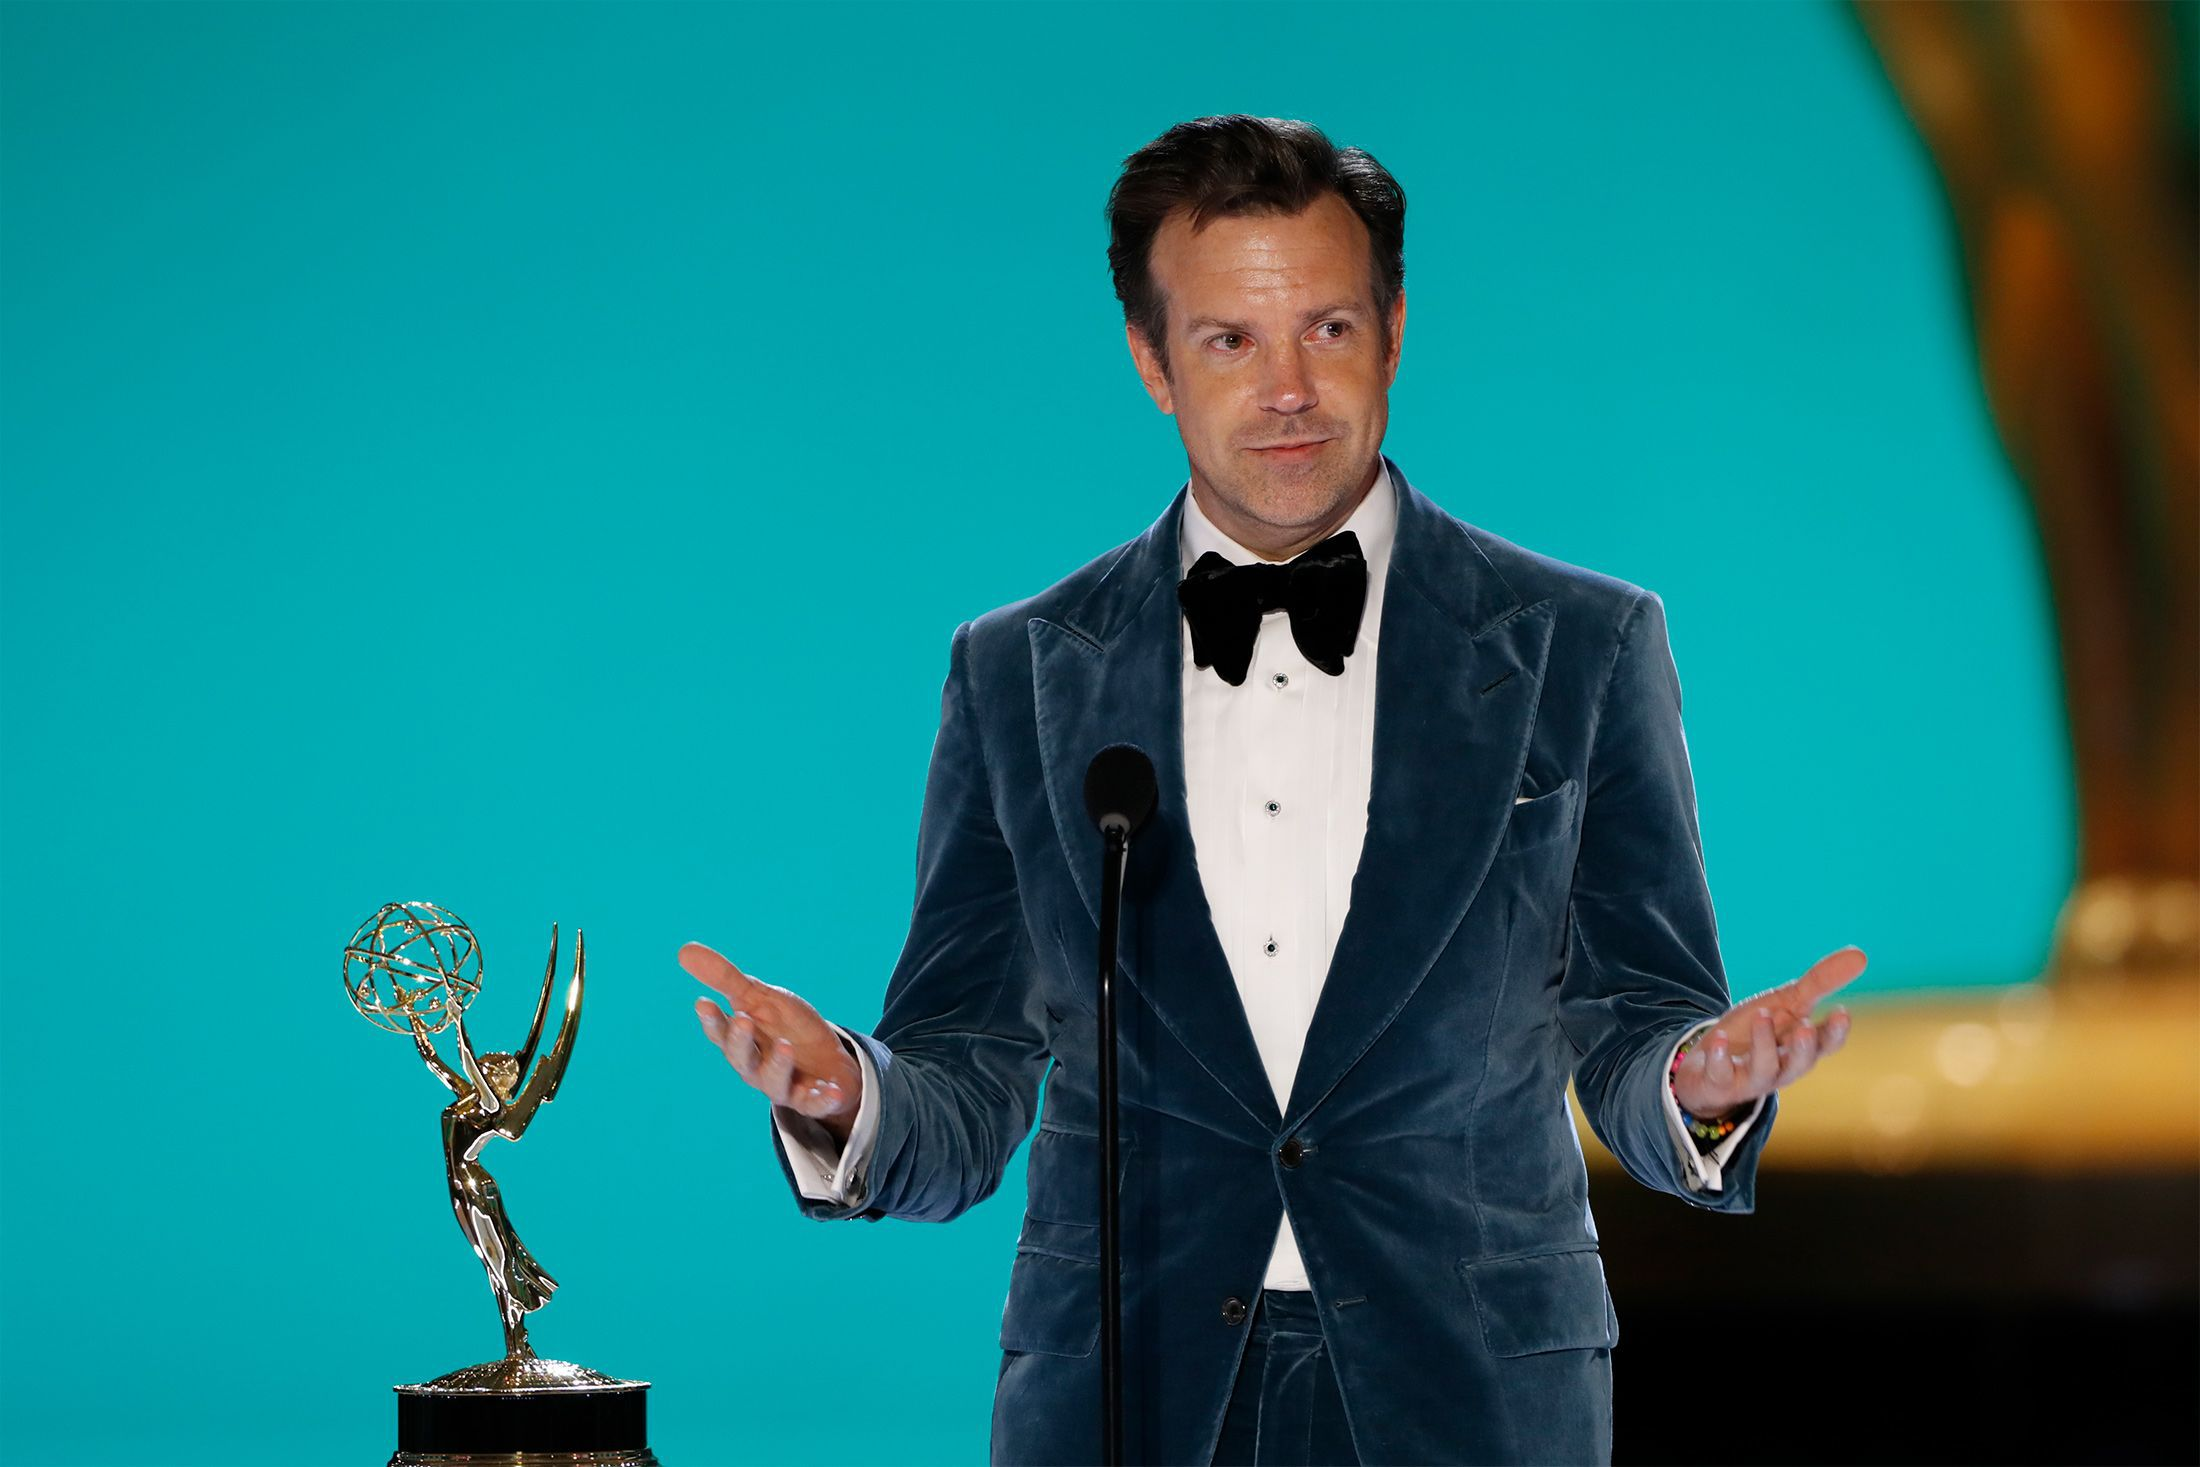 Jason Sudeikis from 'Ted Lasso' appears at the 73RD EMMY AWARDS, broadcast Sunday, Sept. 19 2021.